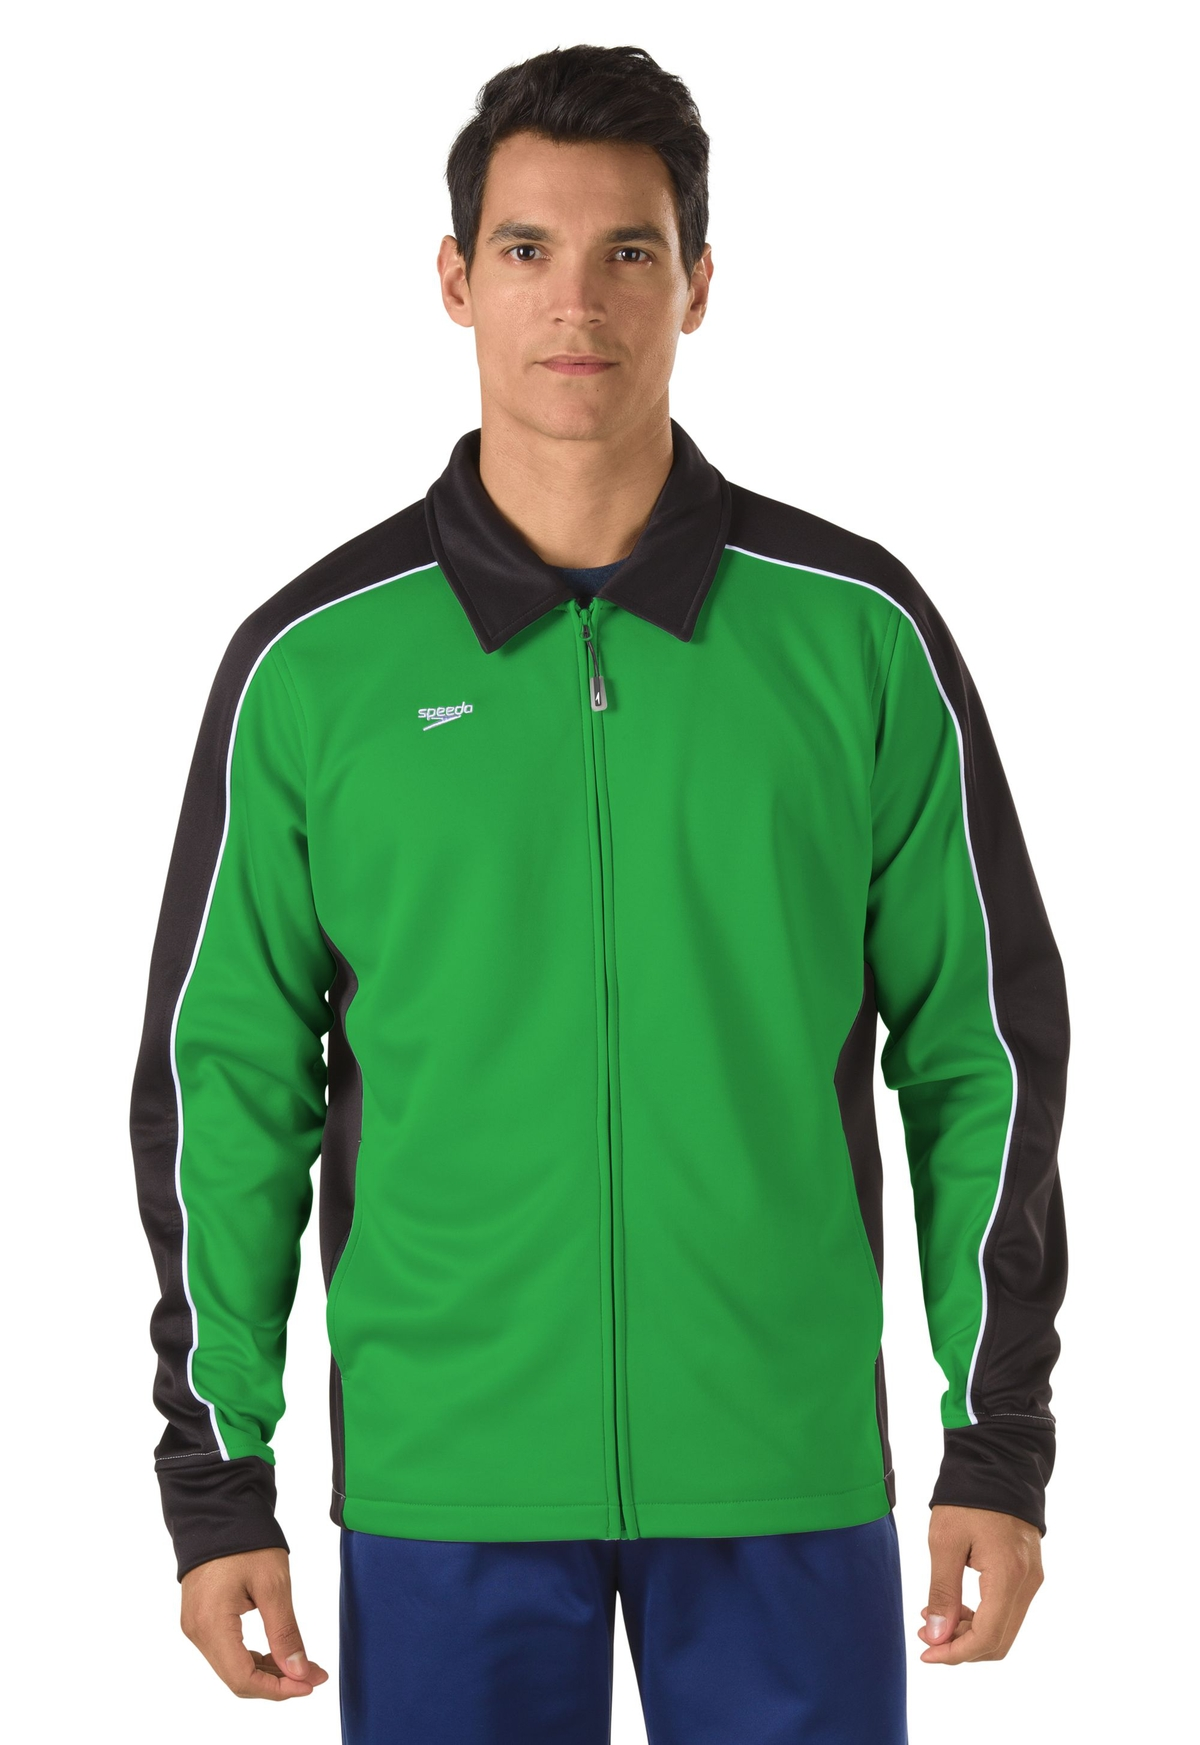 Streamline Warm Up Jacket - Male